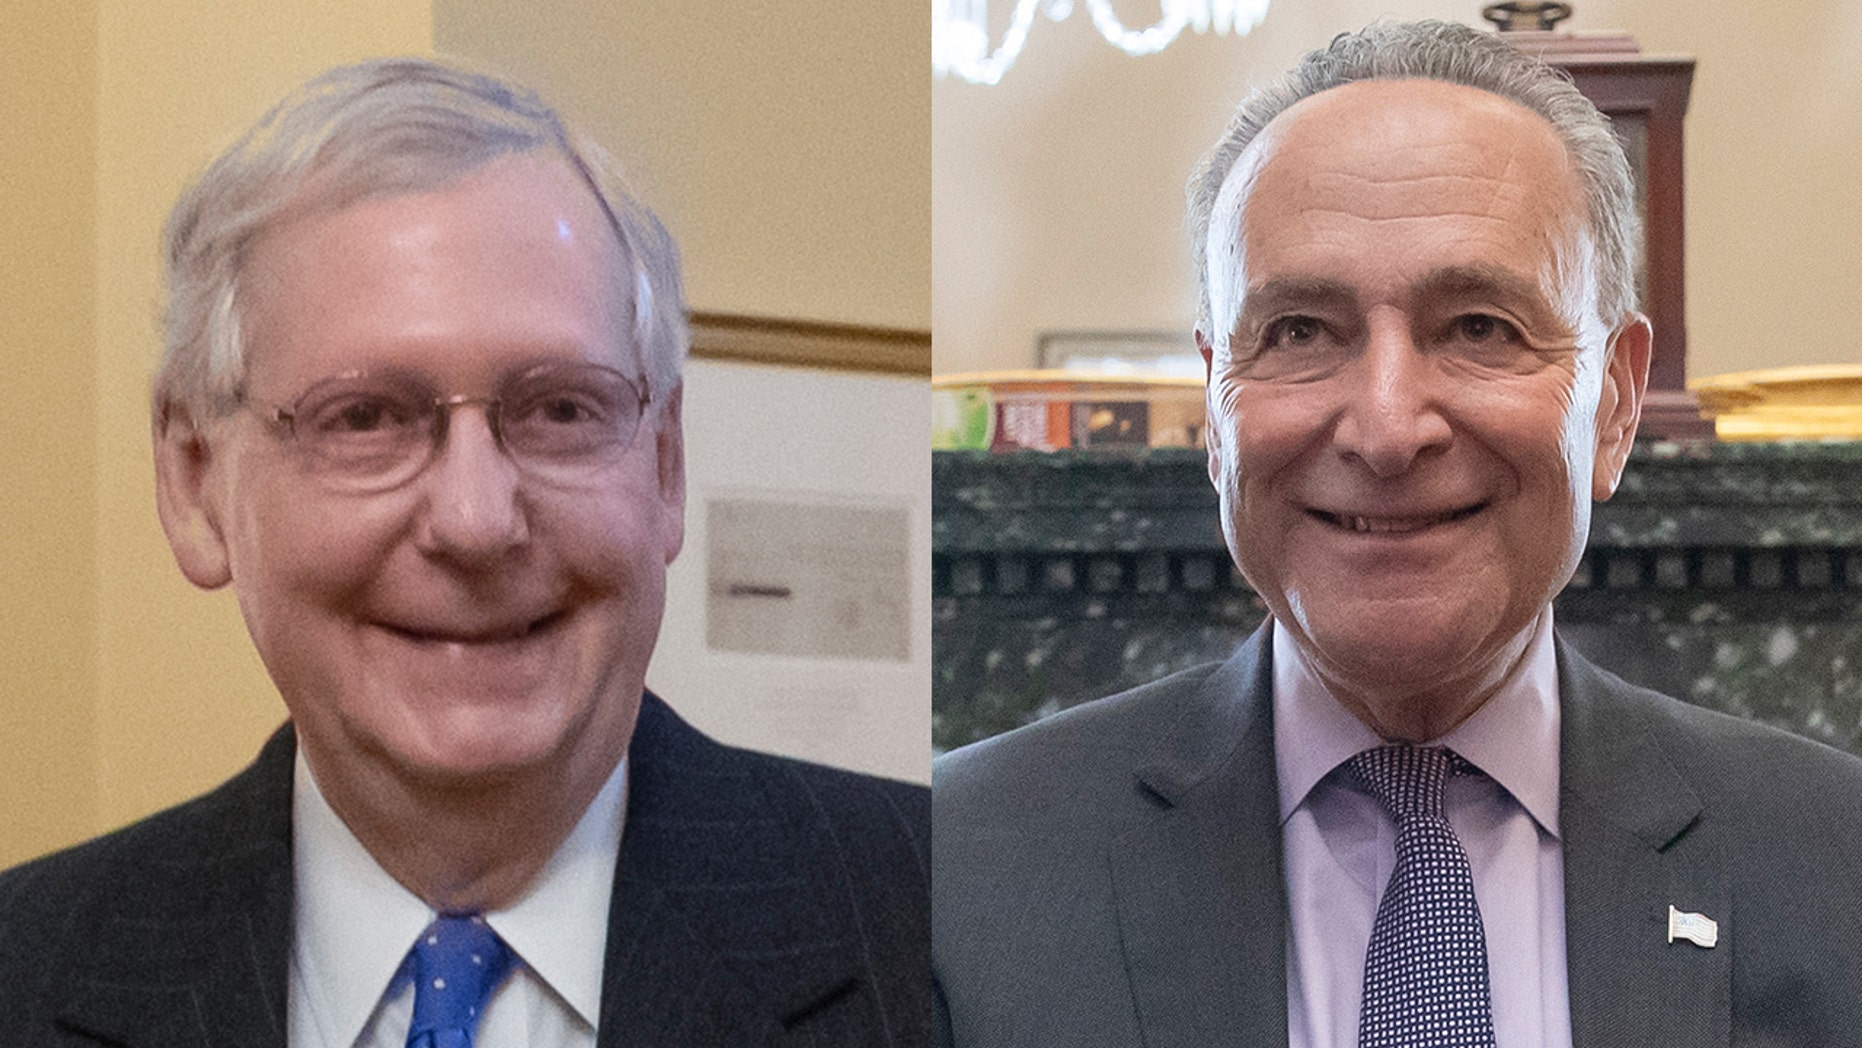 Kentucky Sen. Mitch McConnell on Wednesday was re-elected majority leader of the Senate Republican conference, as Democrats voted to keep New York Sen. Chuck Schumer as their leader. (AP)